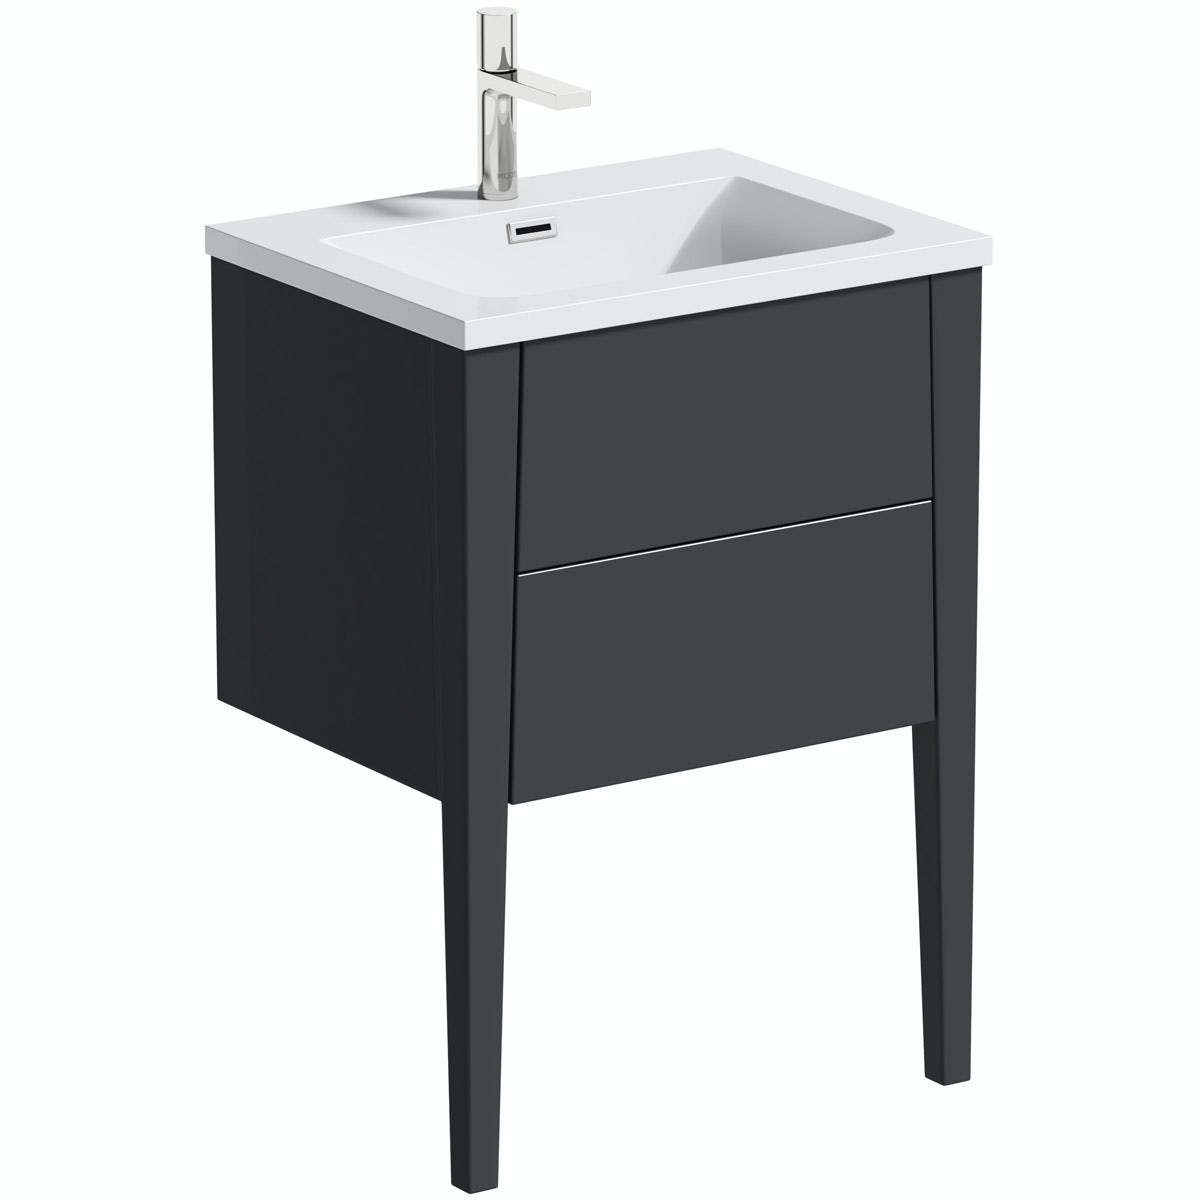 Mode Hale grey gloss wall hung vanity unit and basin 600mm